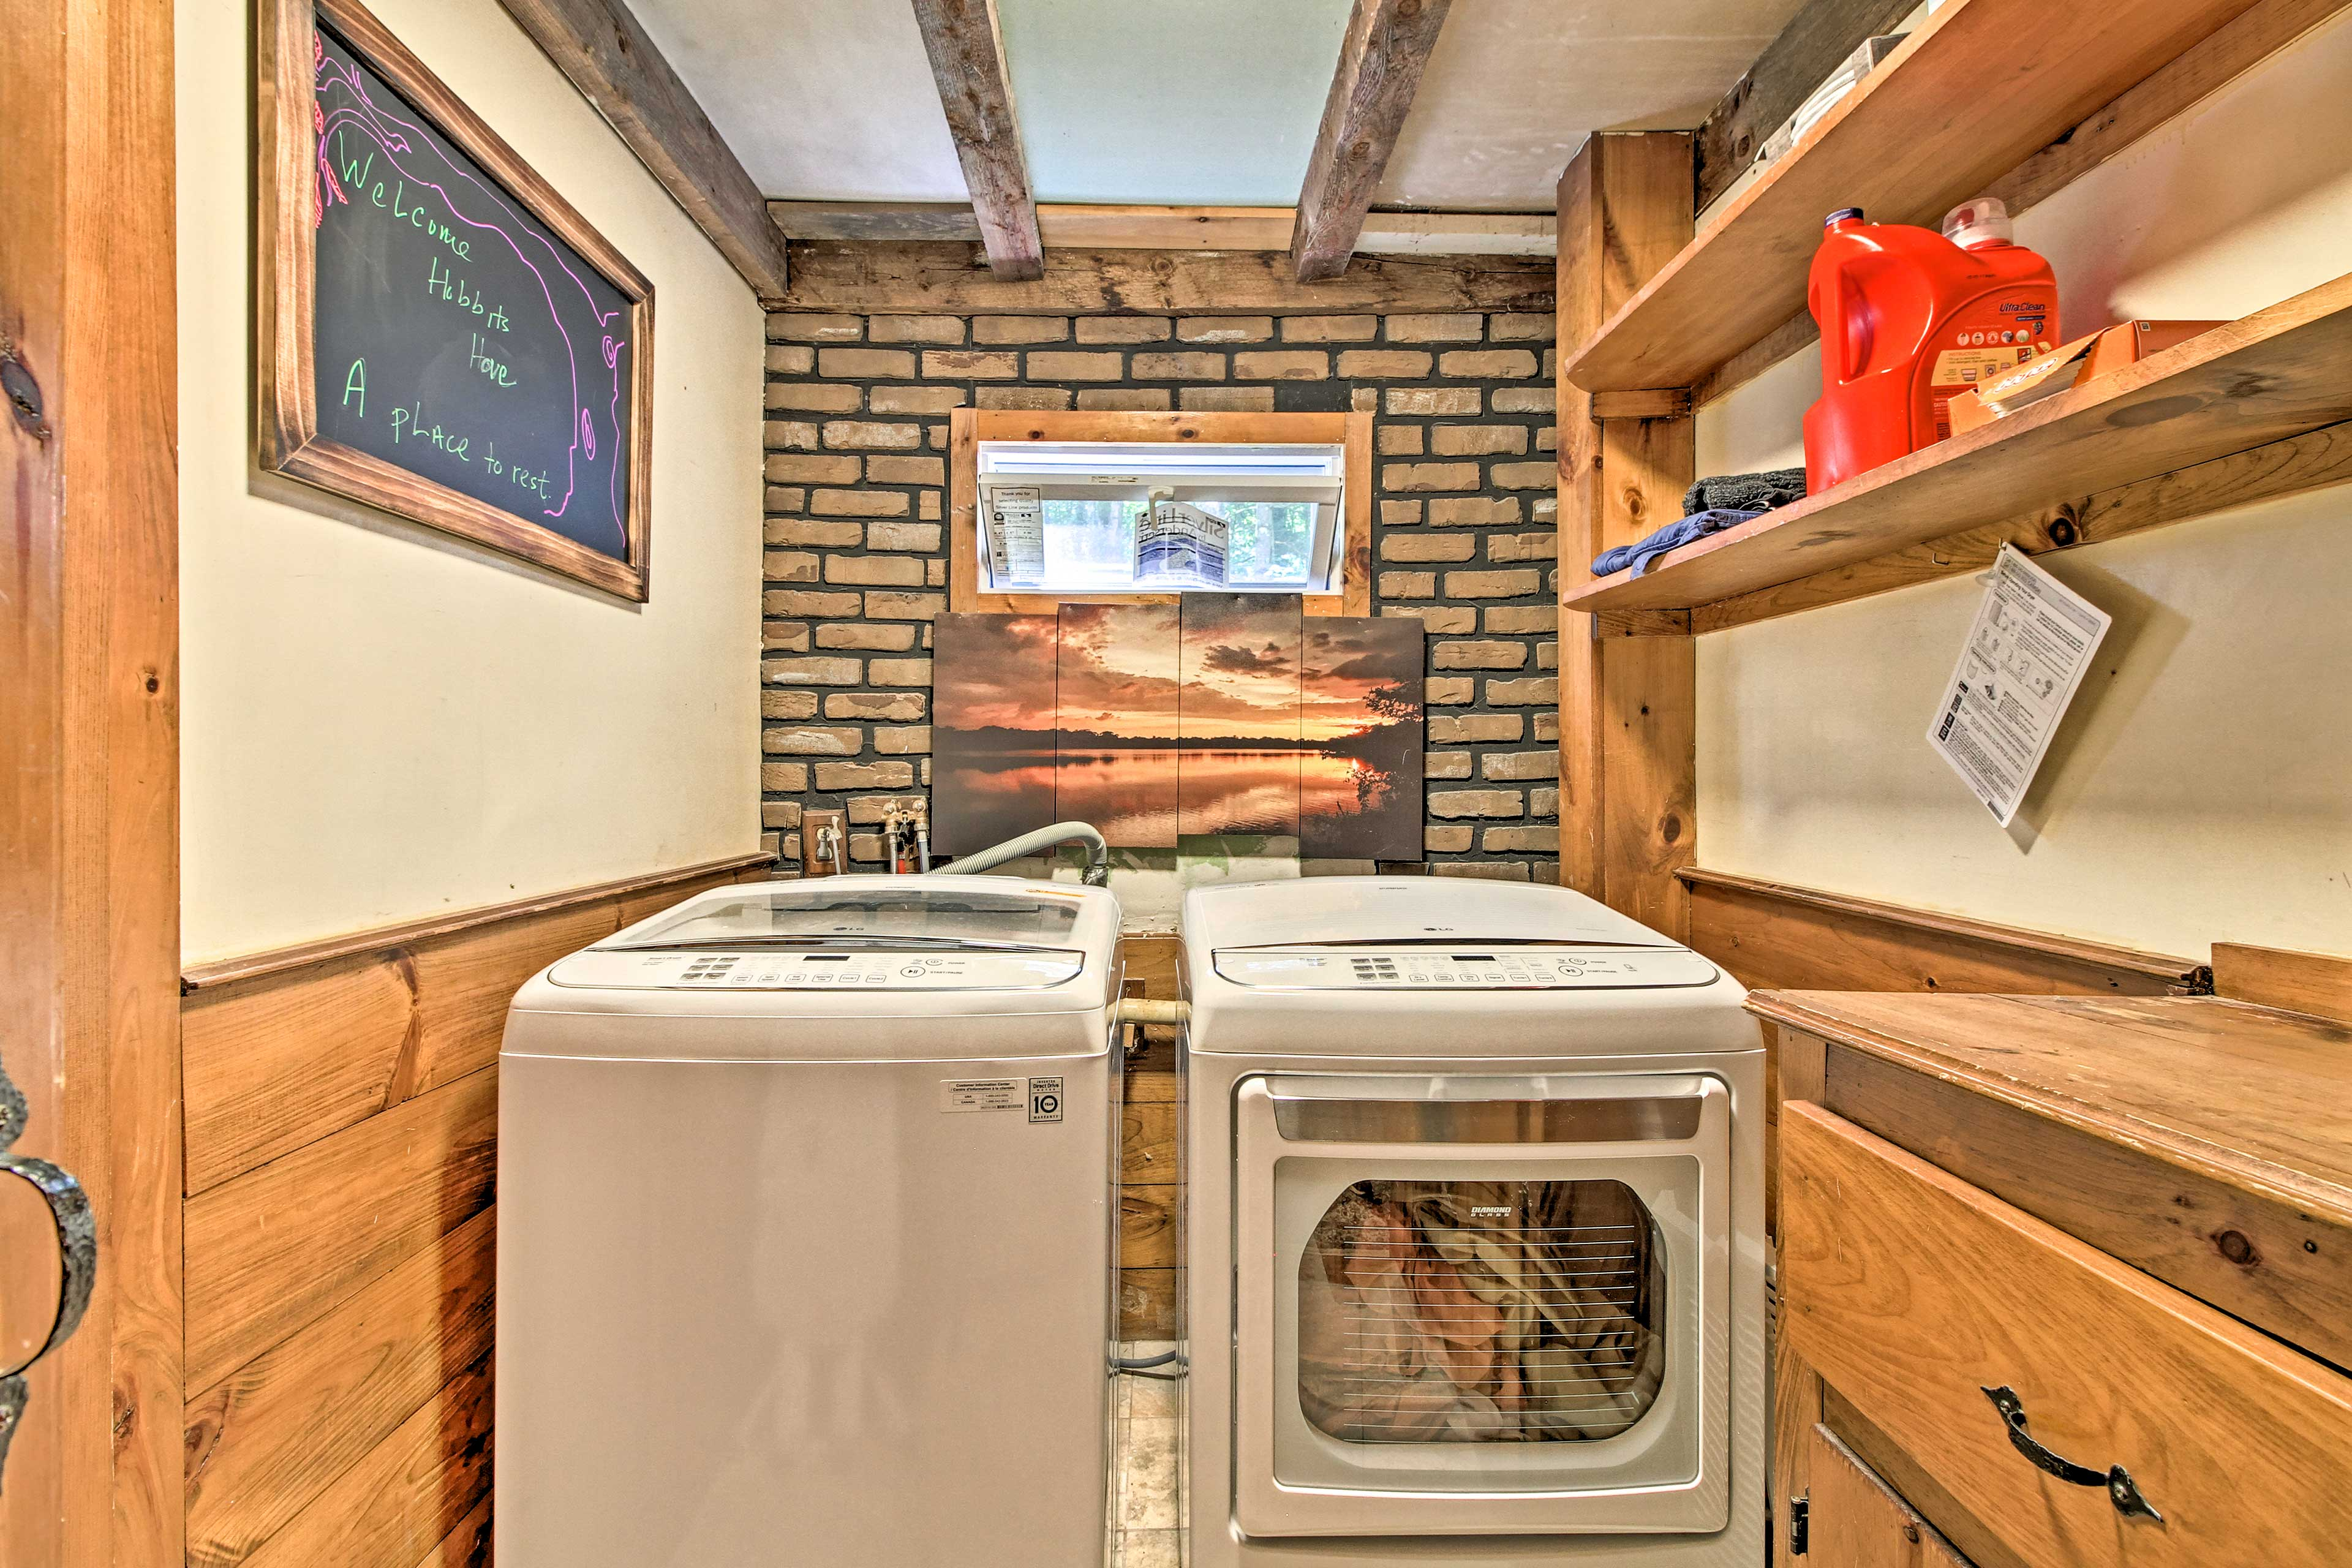 Laundry detergent is provided for the washer and dryer!